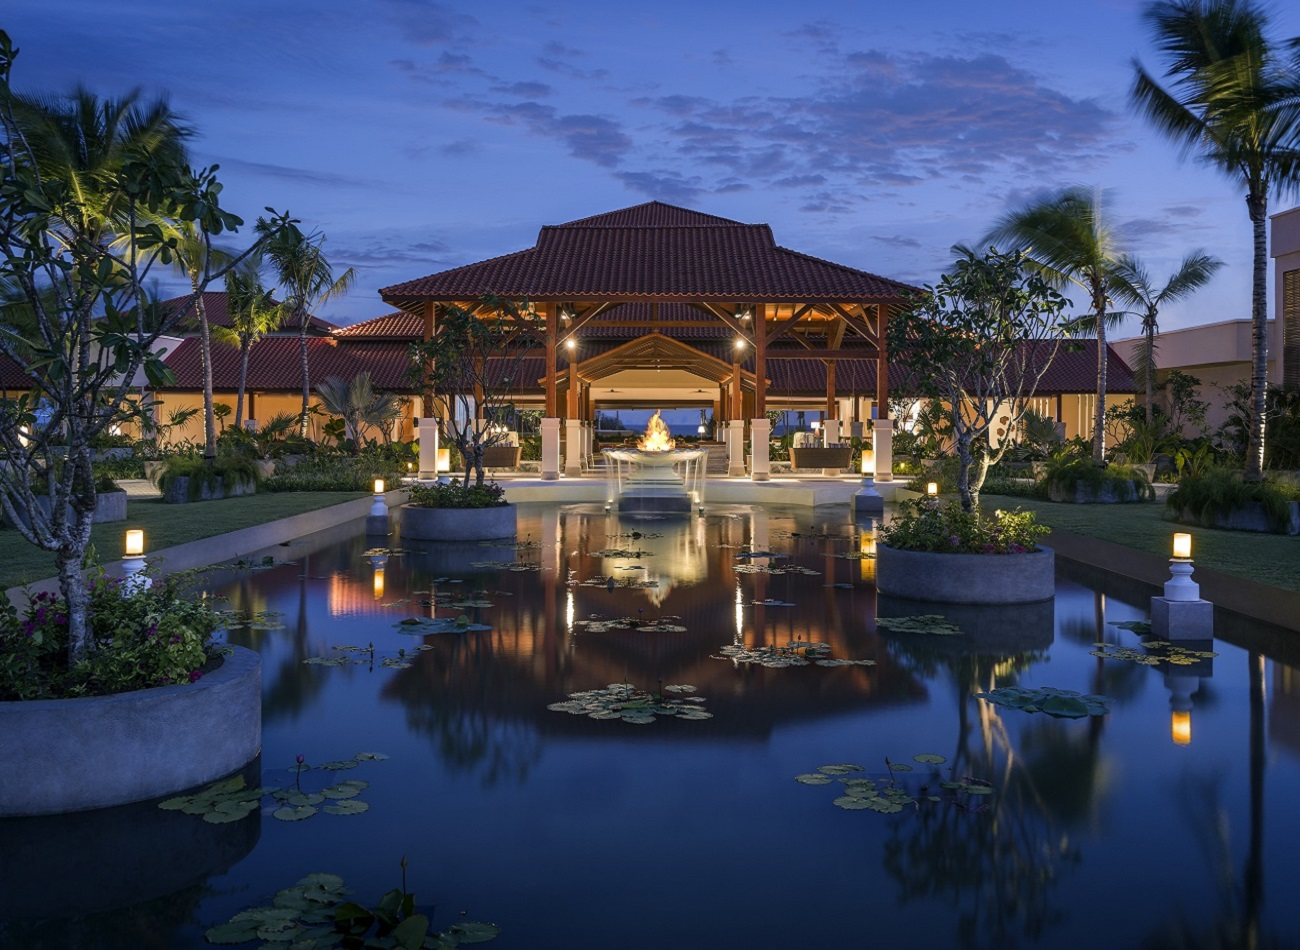 Shangri-La Hambantota Resort in Sri Lanka, night view of the hotel entrance